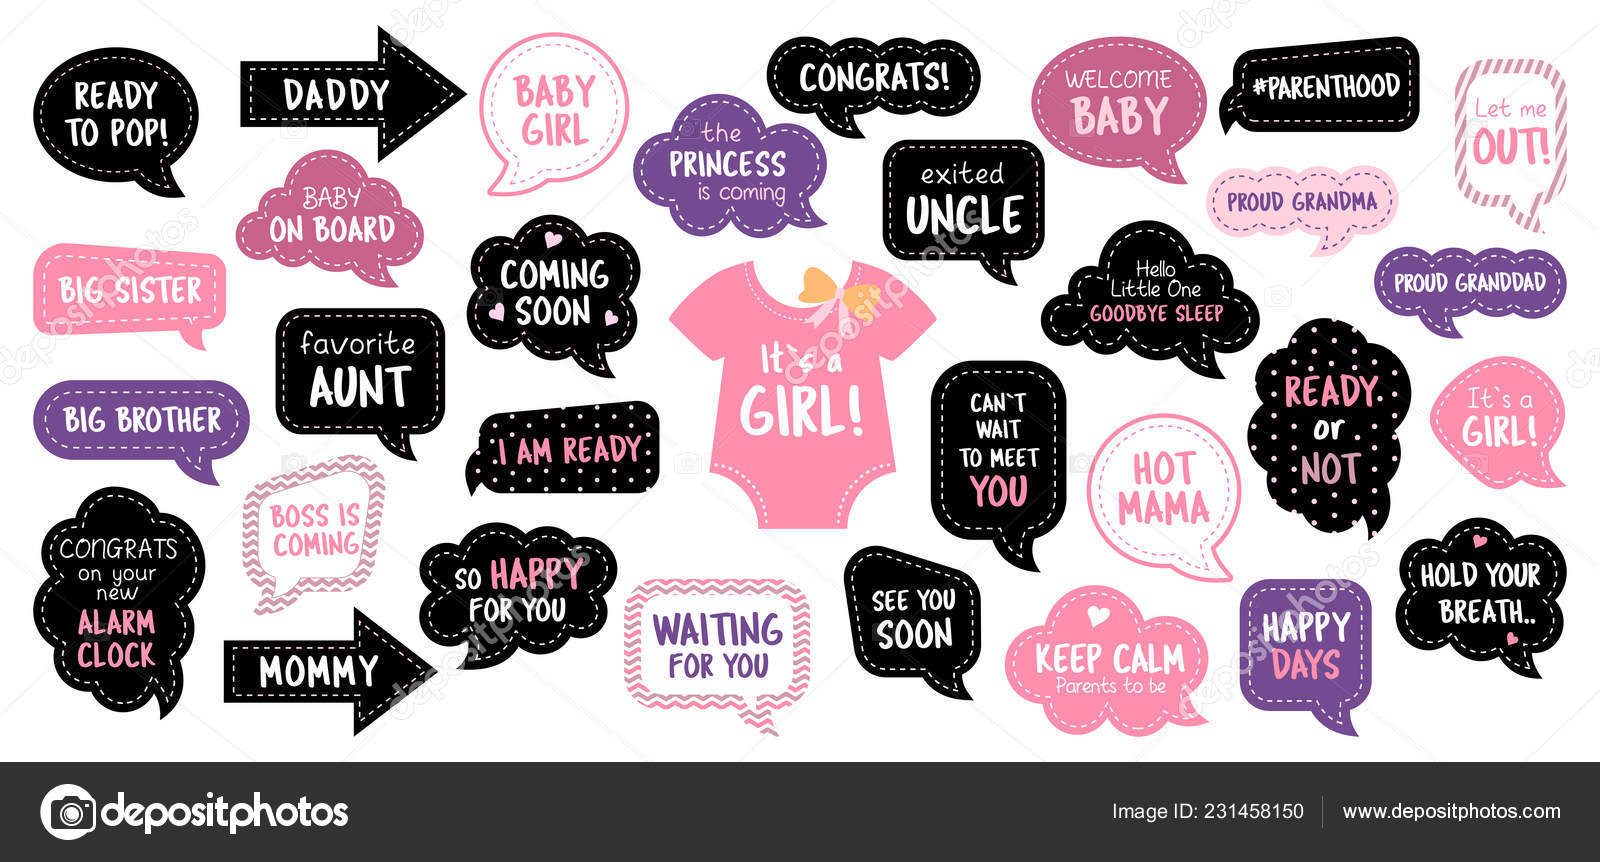 Baby Coming Soon Quotes Quotations Sayings 2019: Bebé Ducha Foto Stand Photobooth Accesorios Set